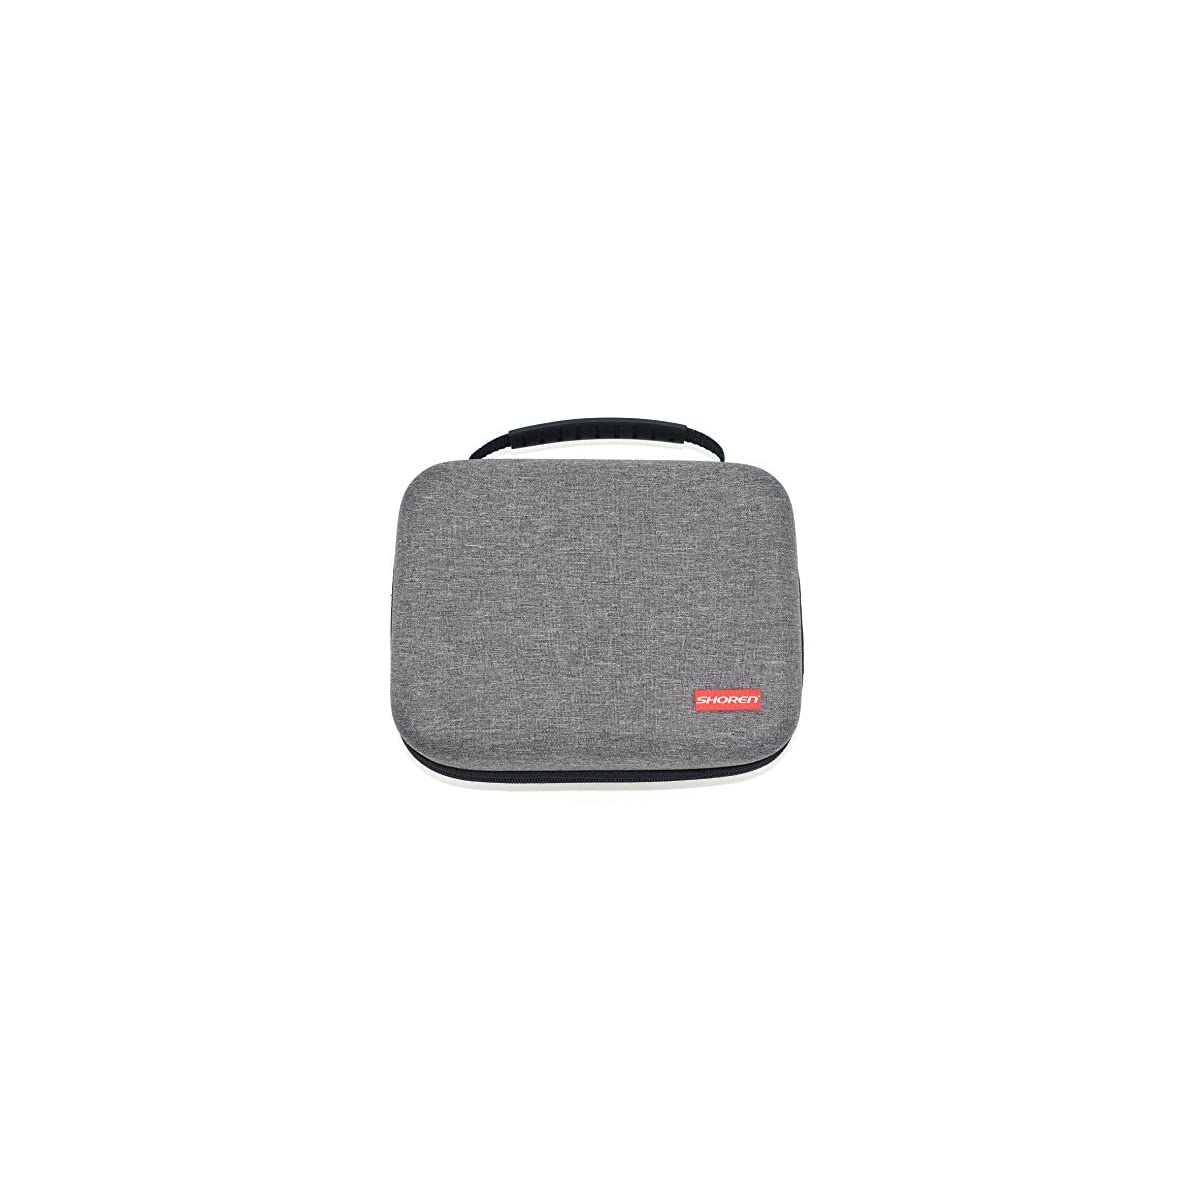 yocktec oculus go carry case with hand strap travel carrying case bag protective case cover portable hard case accessory for oculus go vr headset YockTec Oculus Go Carry Case with Hand Strap Travel Carrying Case Bag Protective Case Cover Portable Hard Case Accessory for Oculus Go VR Headset 51OXLc77AlL